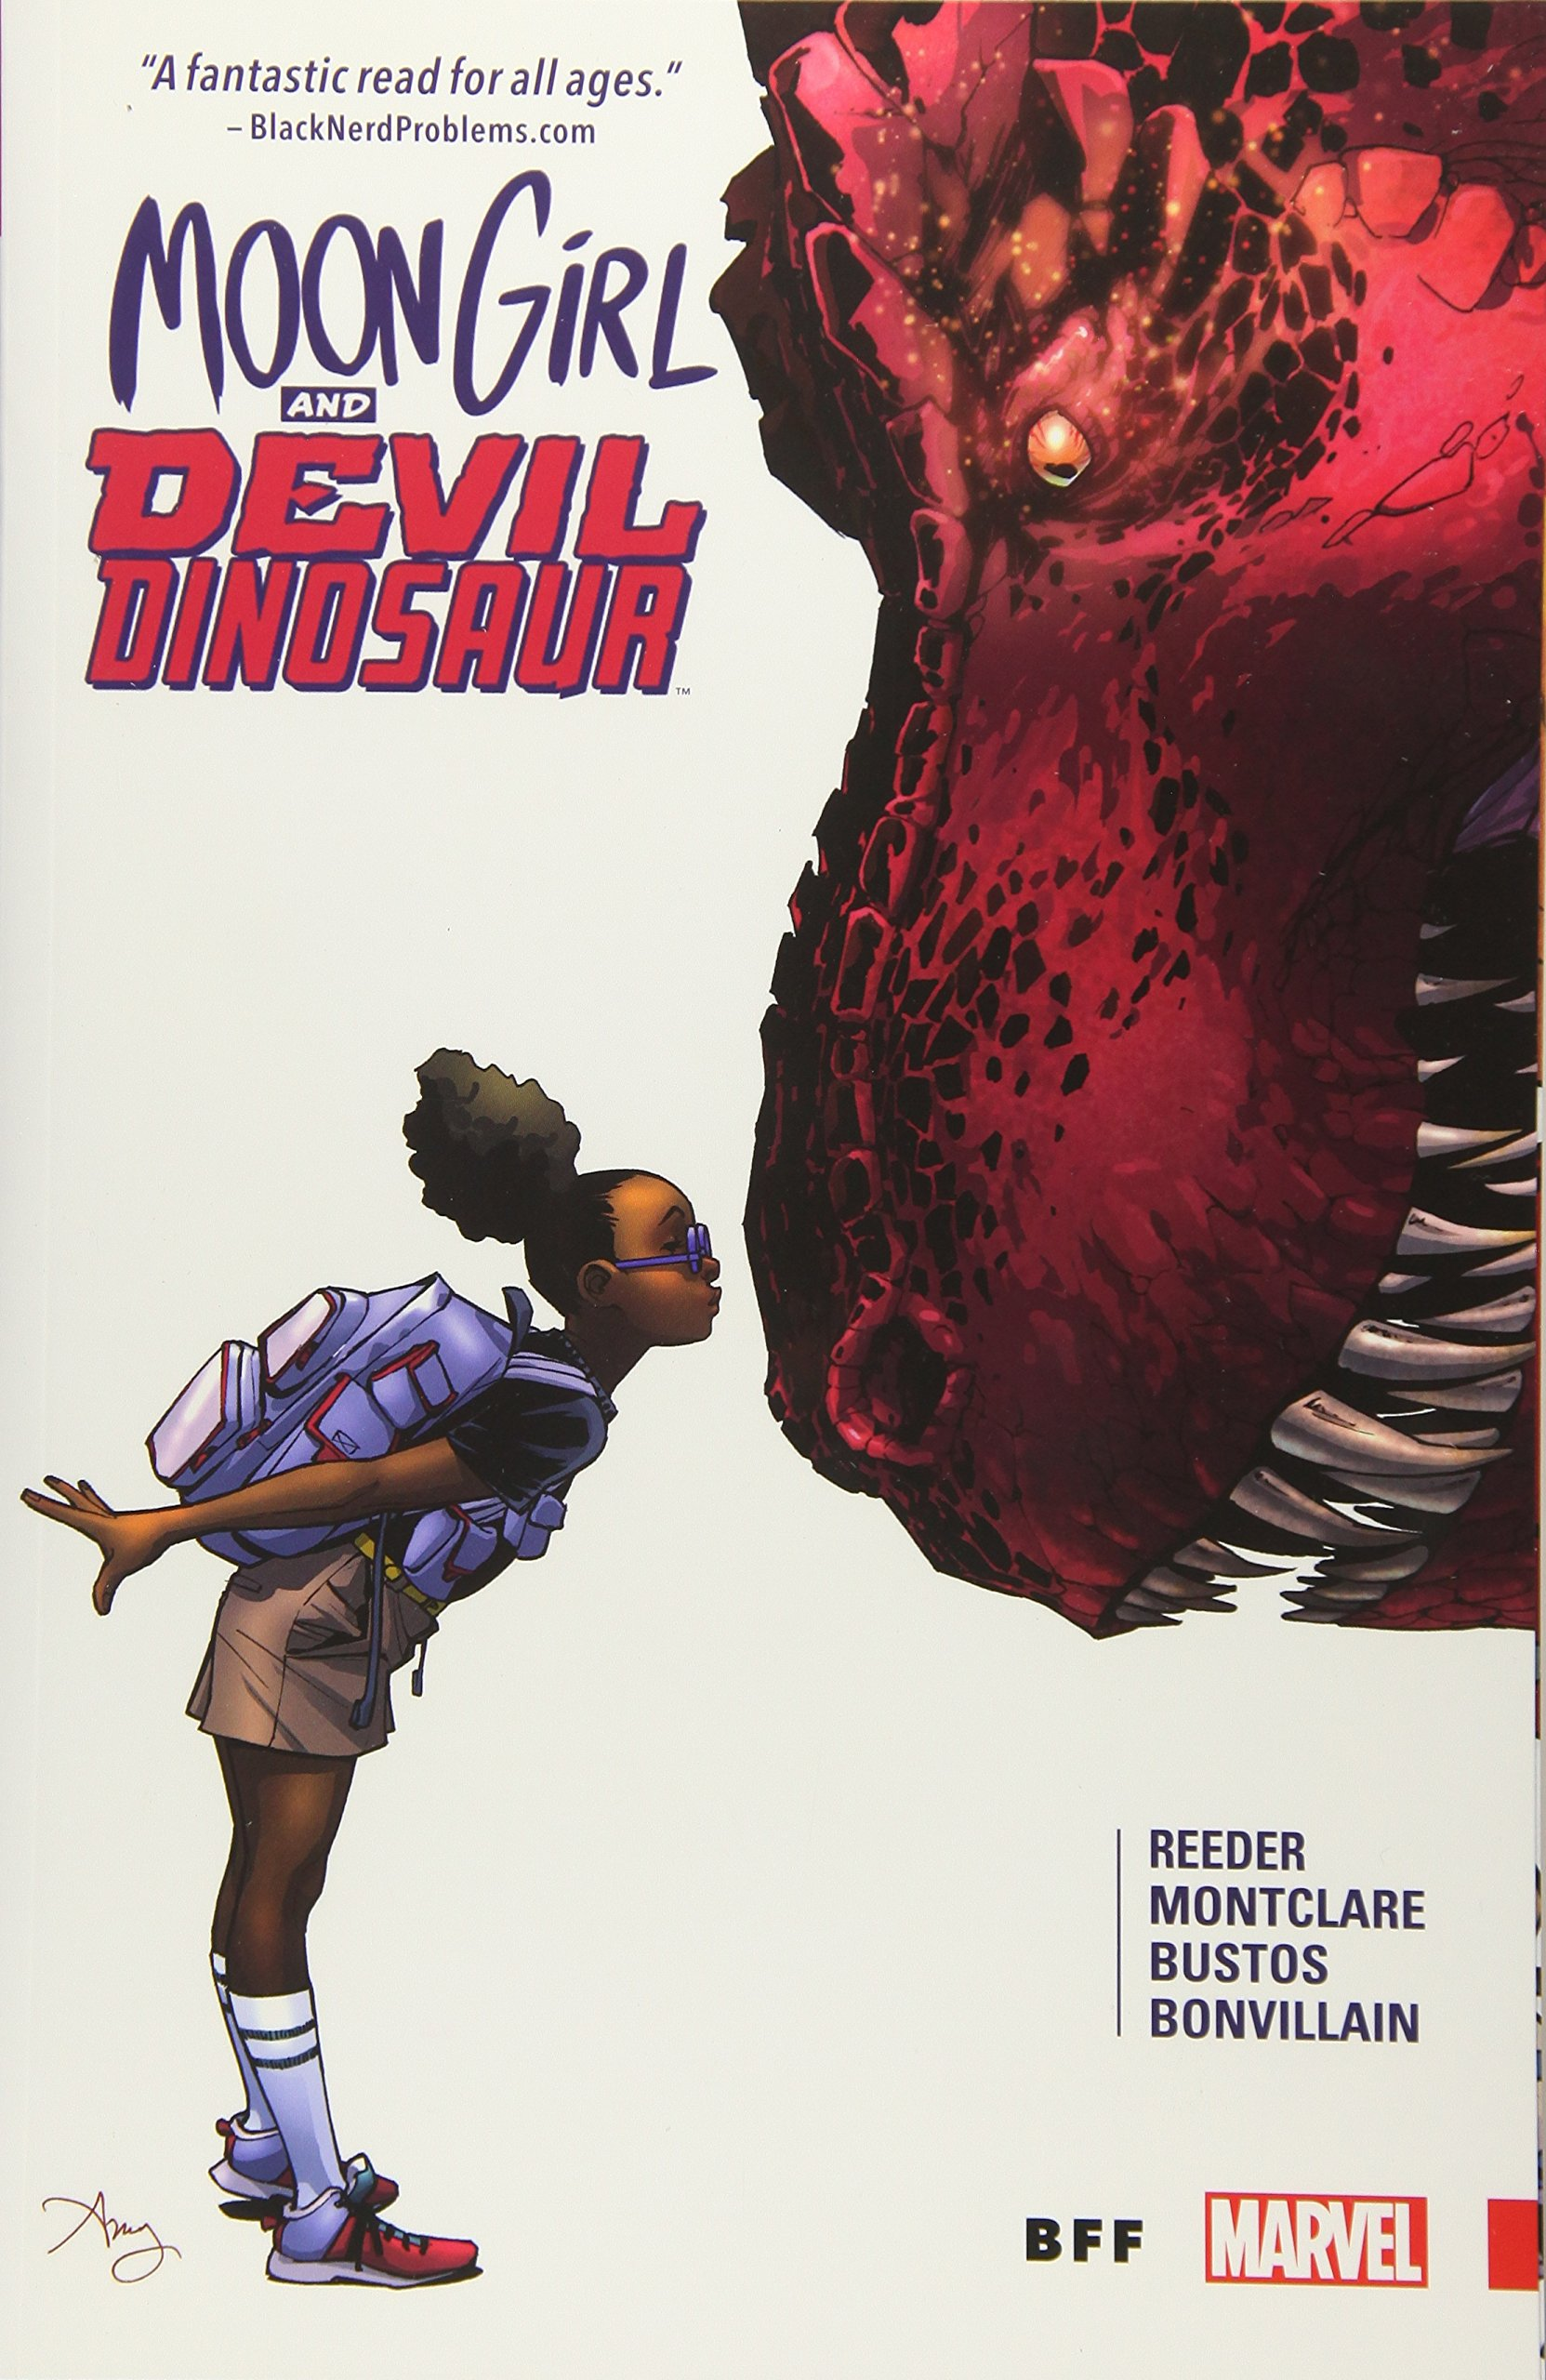 Moon Girl and Devil Dinosaur Vol. 1 BFF: Amazon.co.uk: Amy Reeder ...